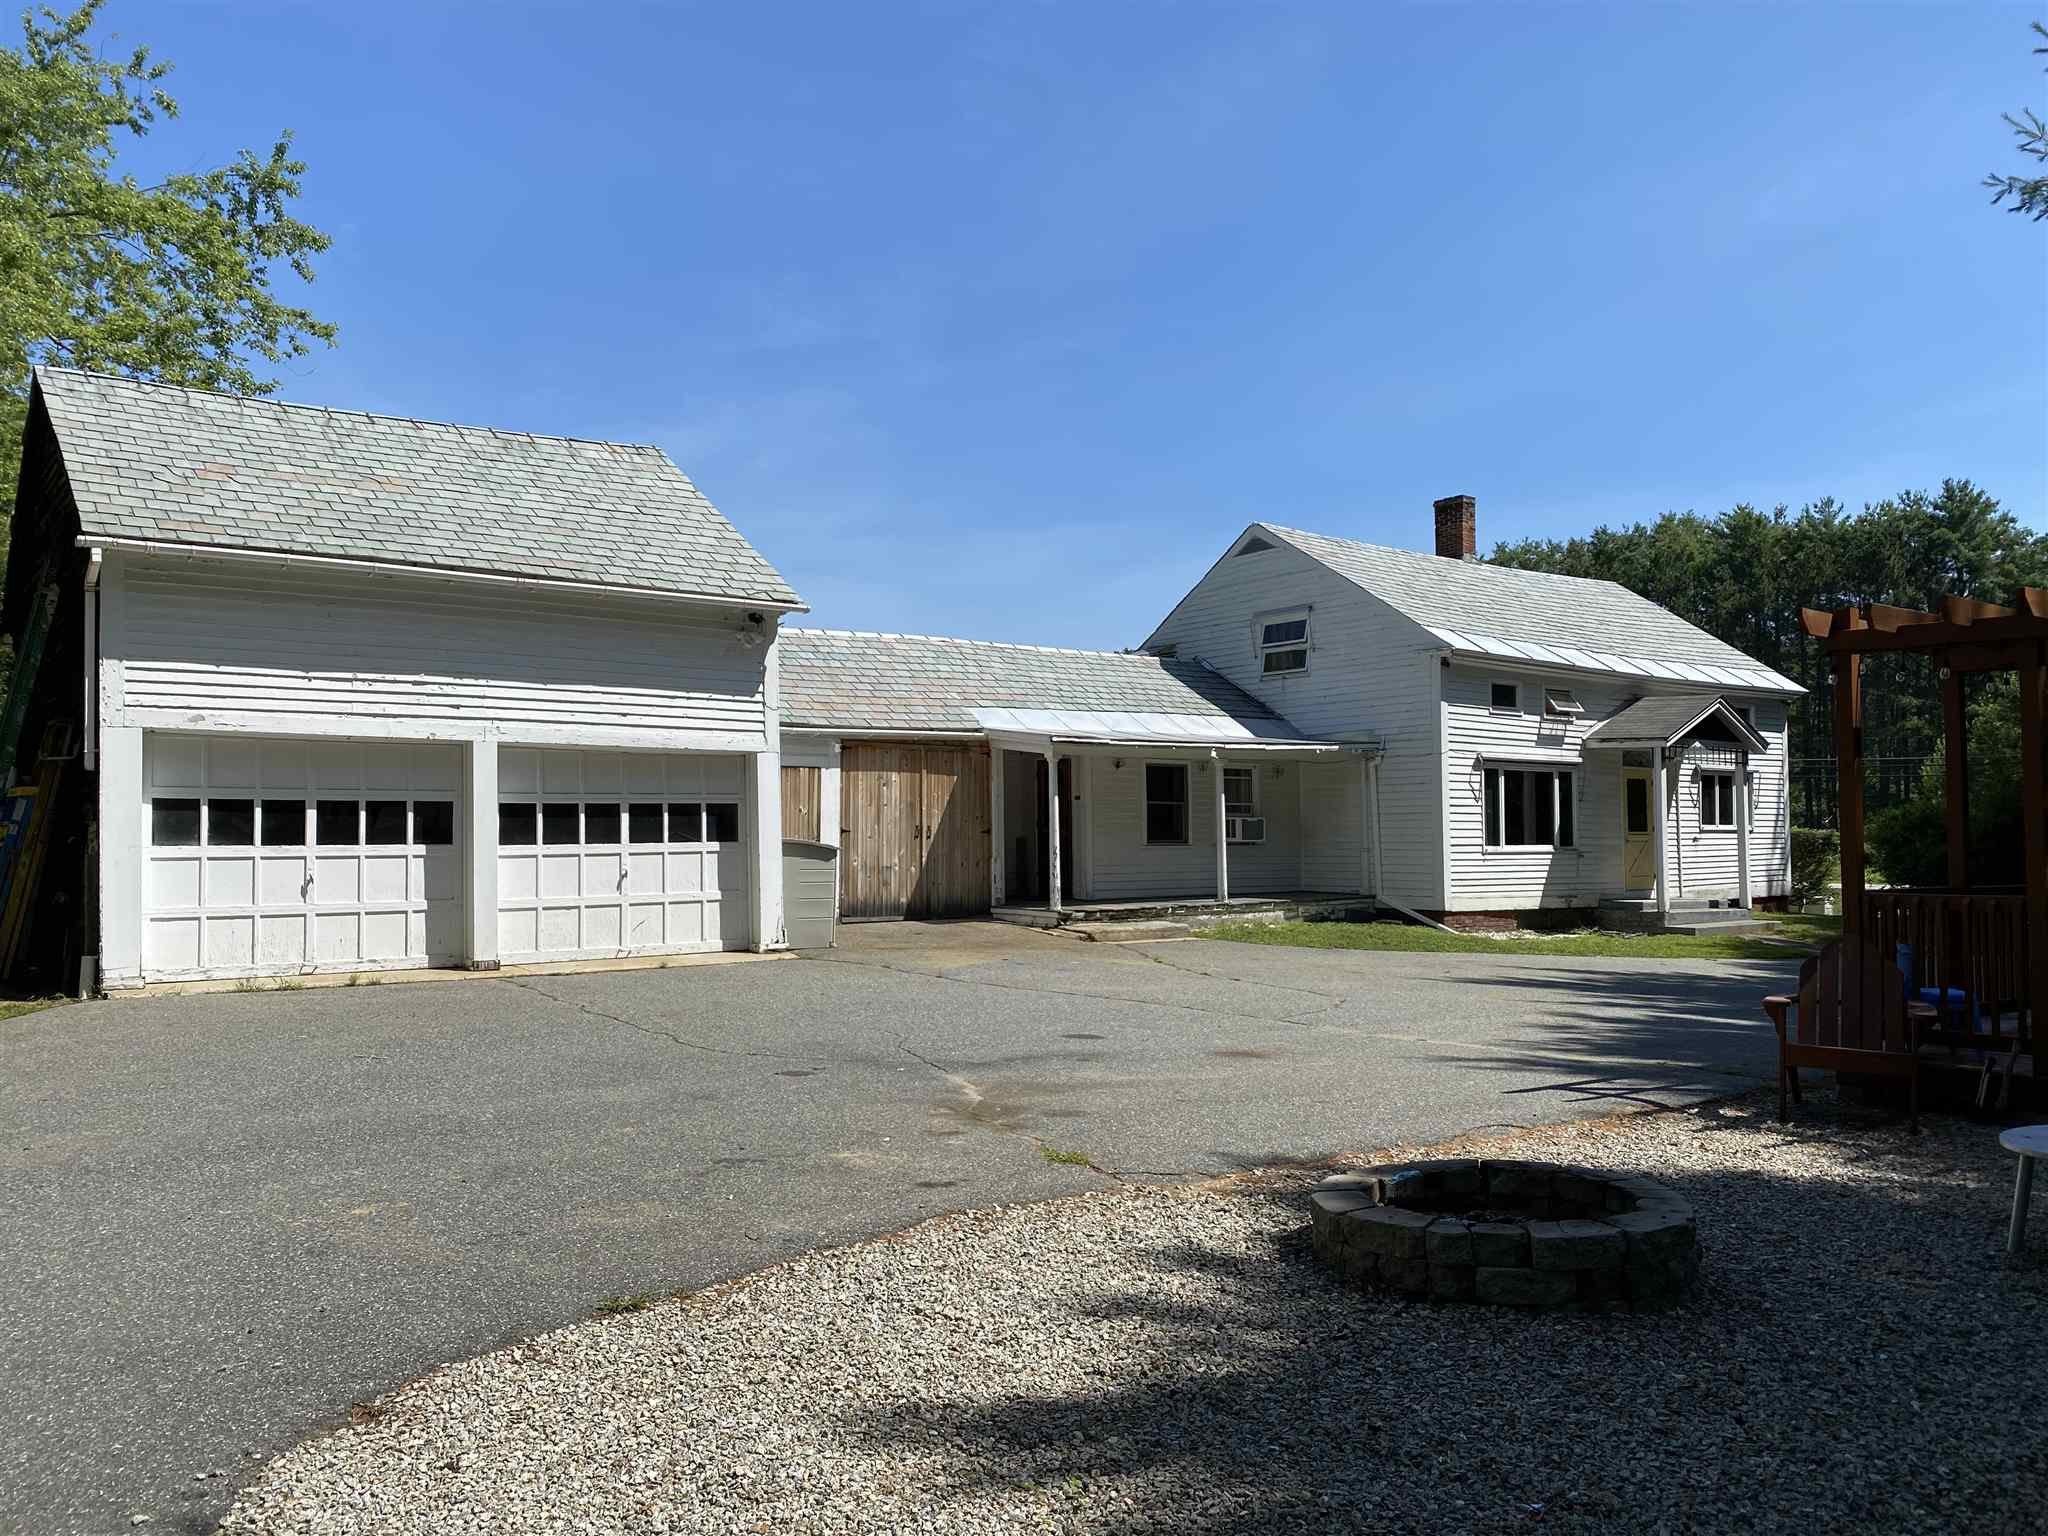 MLS 4818932: 90 Keene Road, Winchester NH